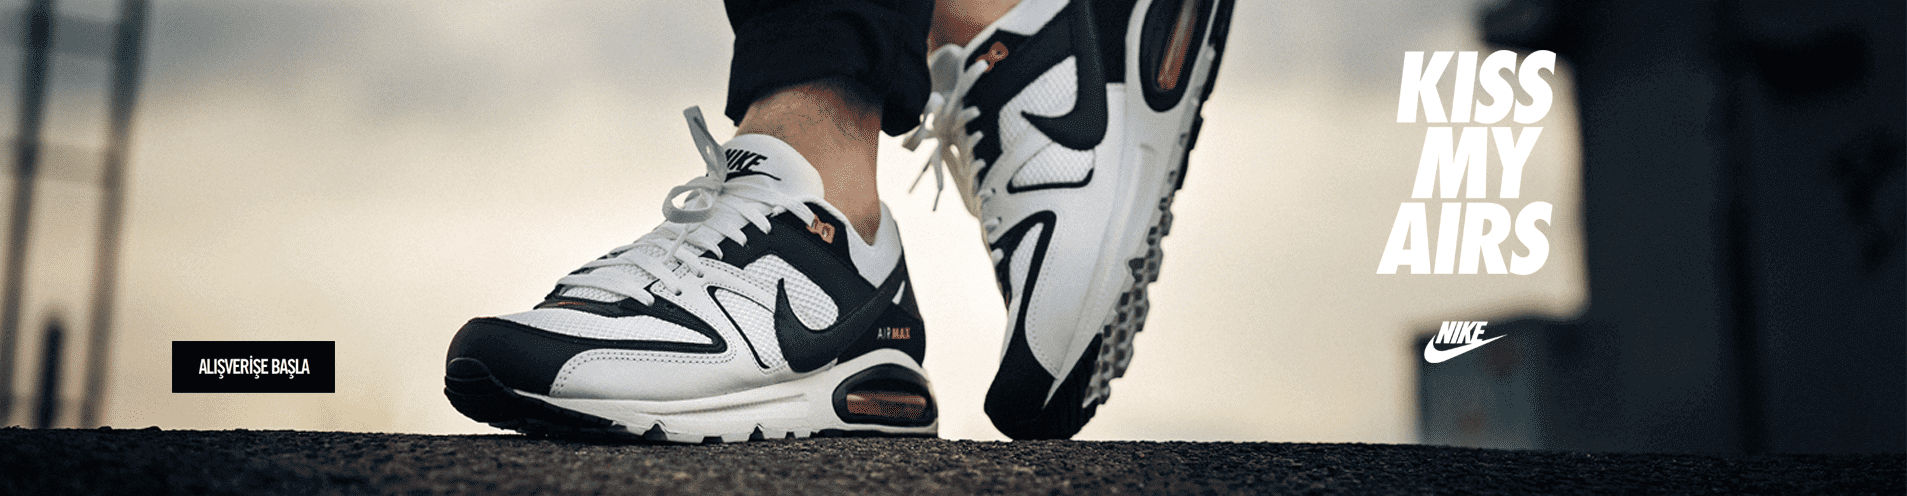 Nike Air Max ayakkabı - kissmyairs